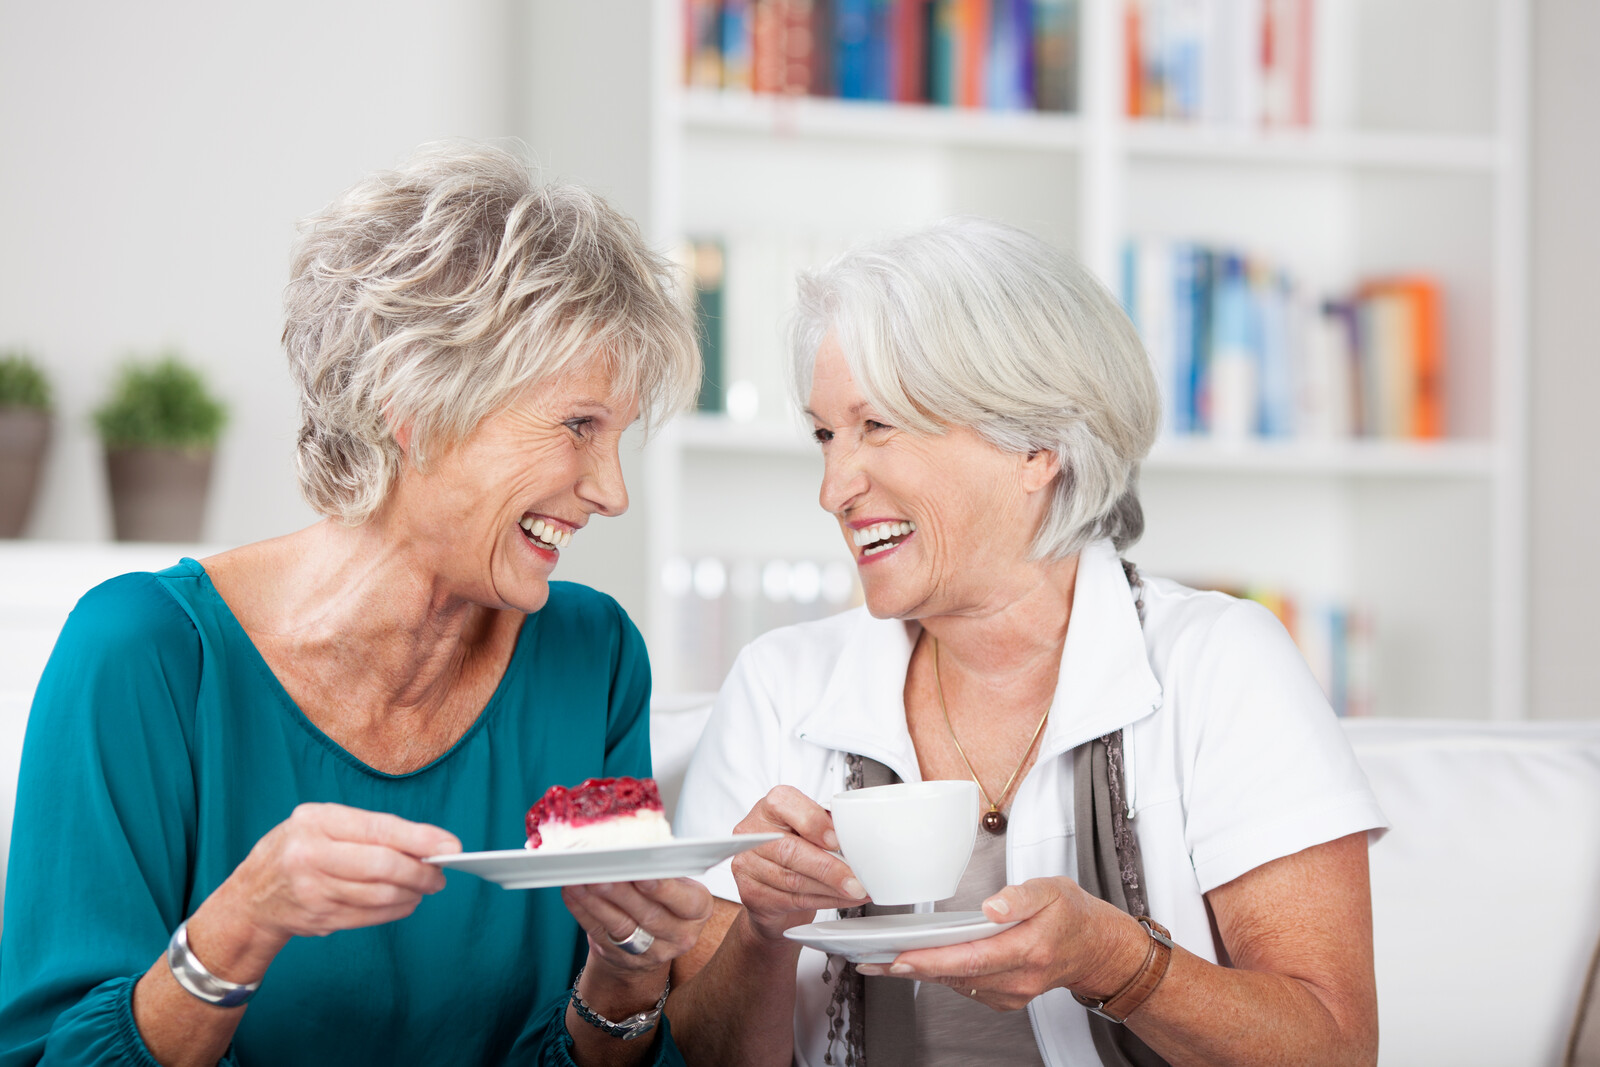 Two senior women sitting on a couch enjoying coffee and dessert laughing together